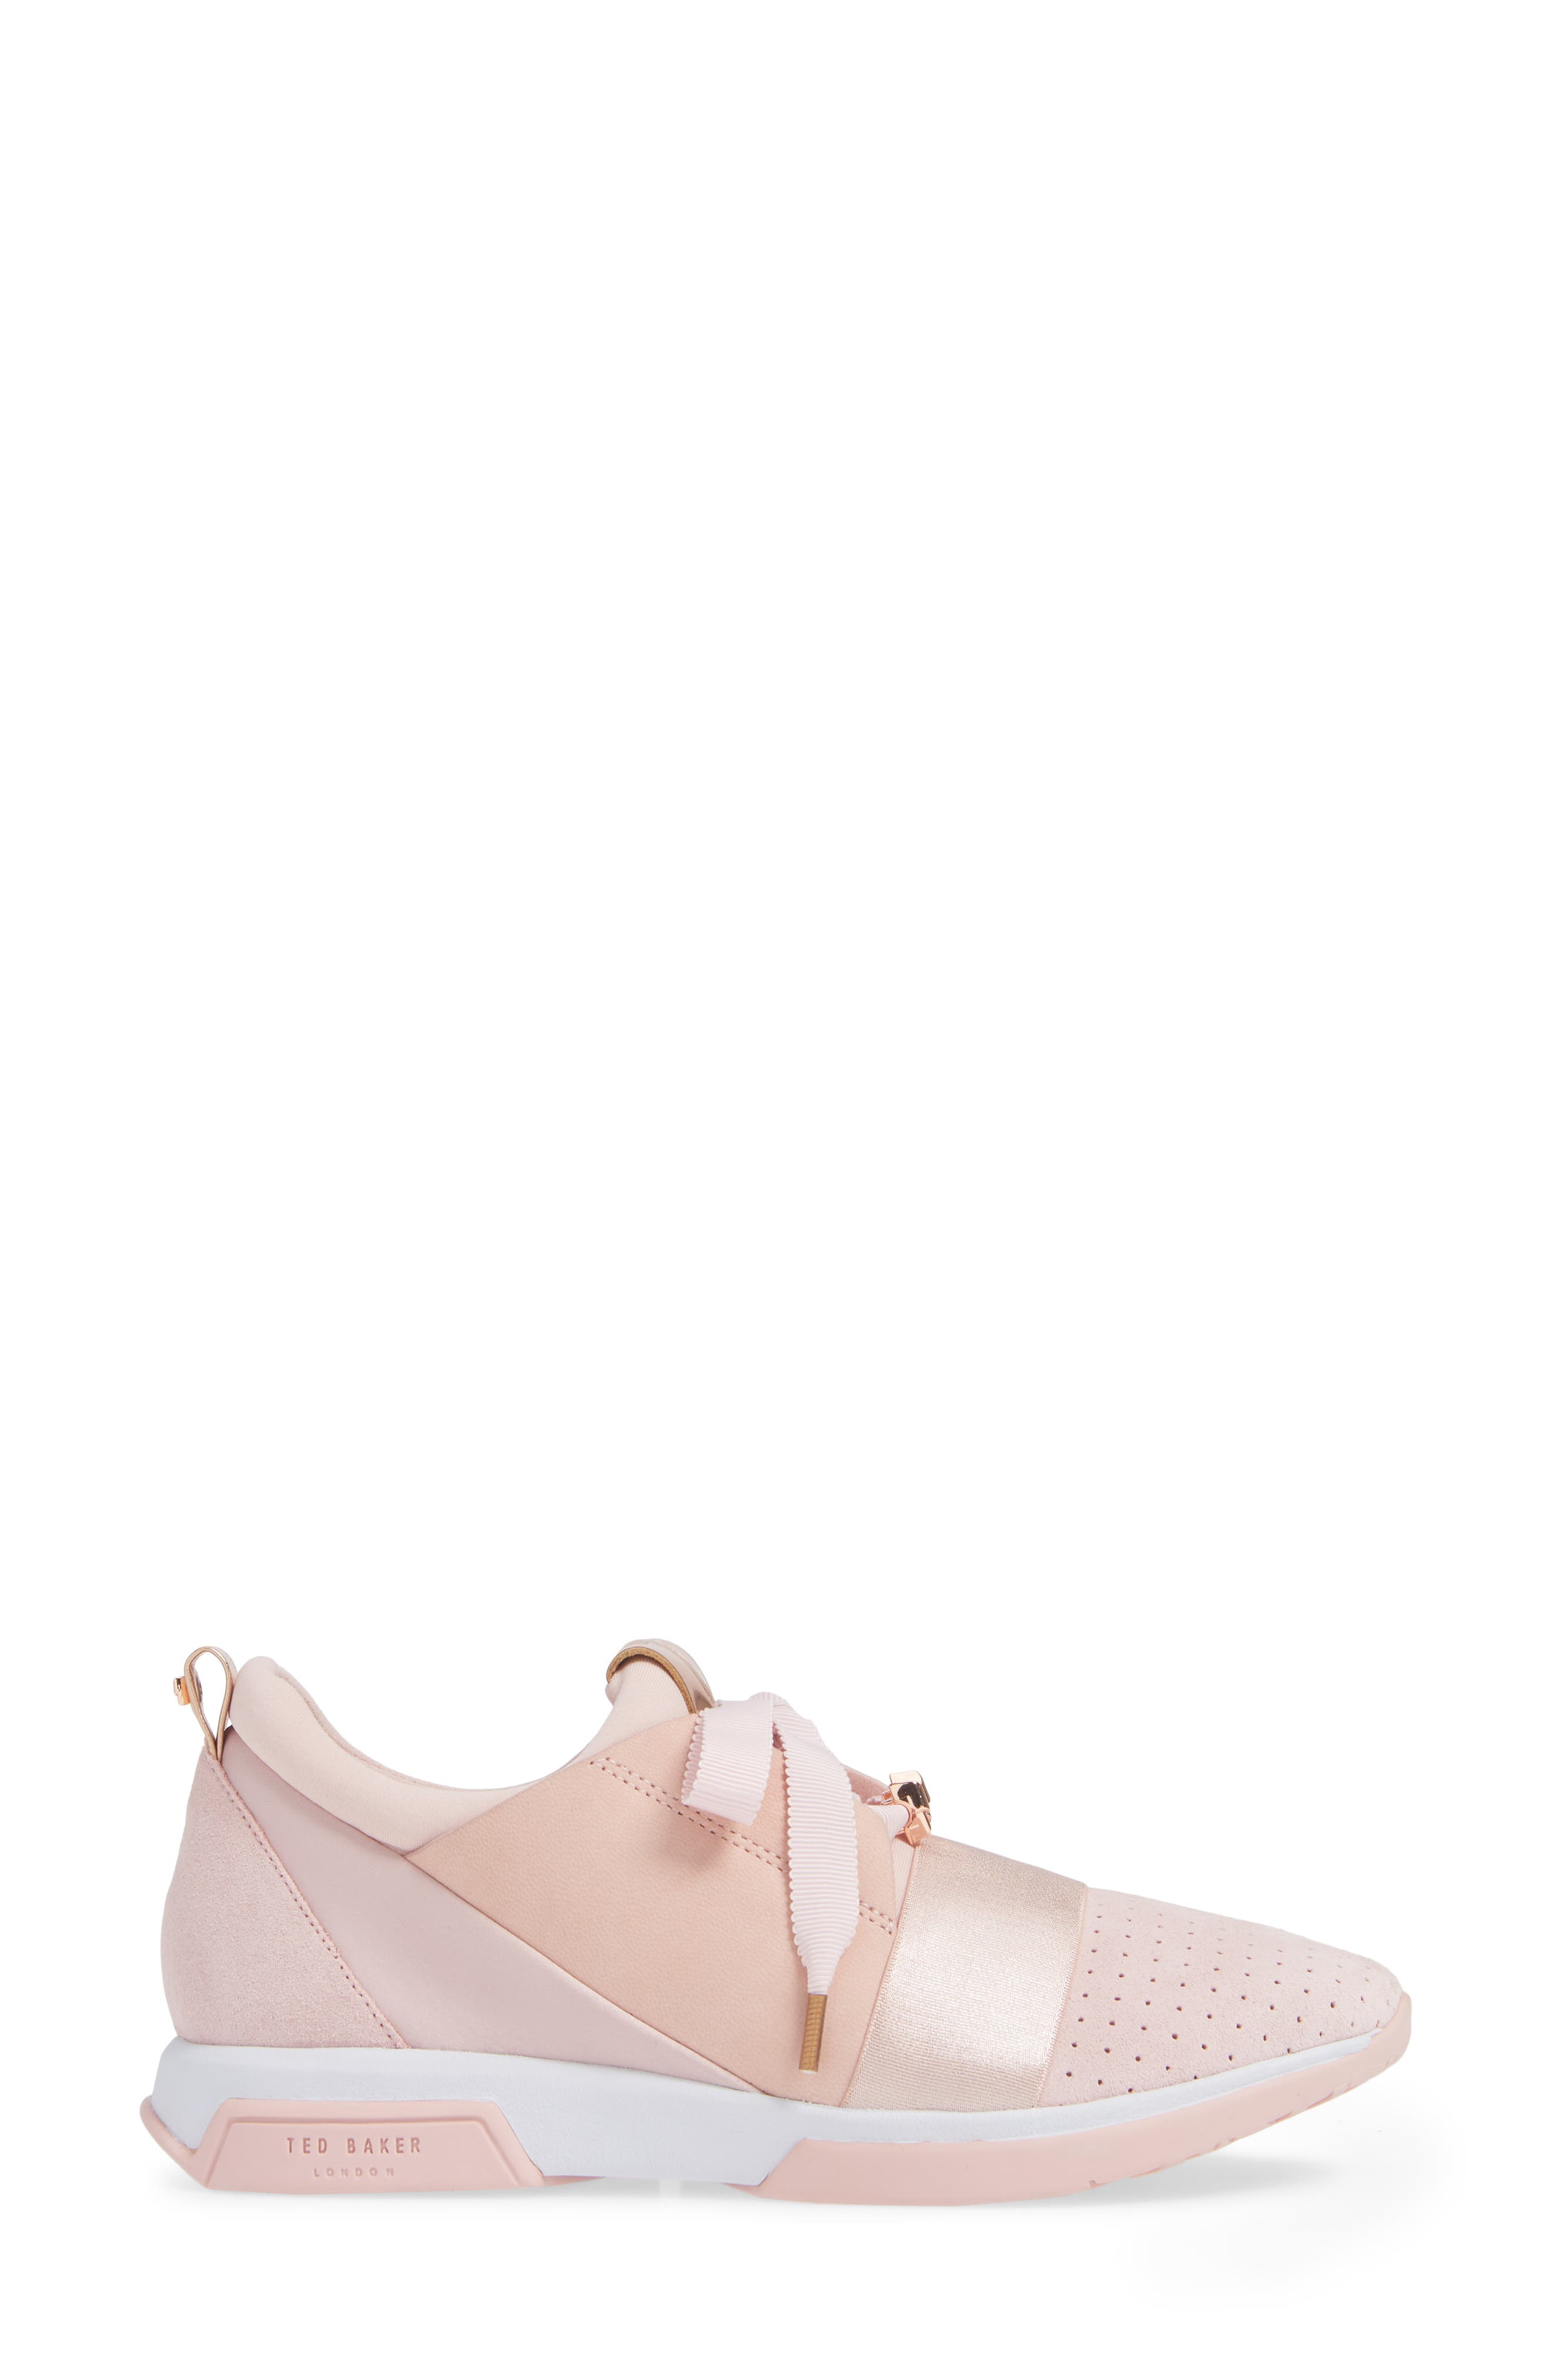 Cepap 2 Sneaker,                             Alternate thumbnail 3, color,                             MINK PINK FABRIC